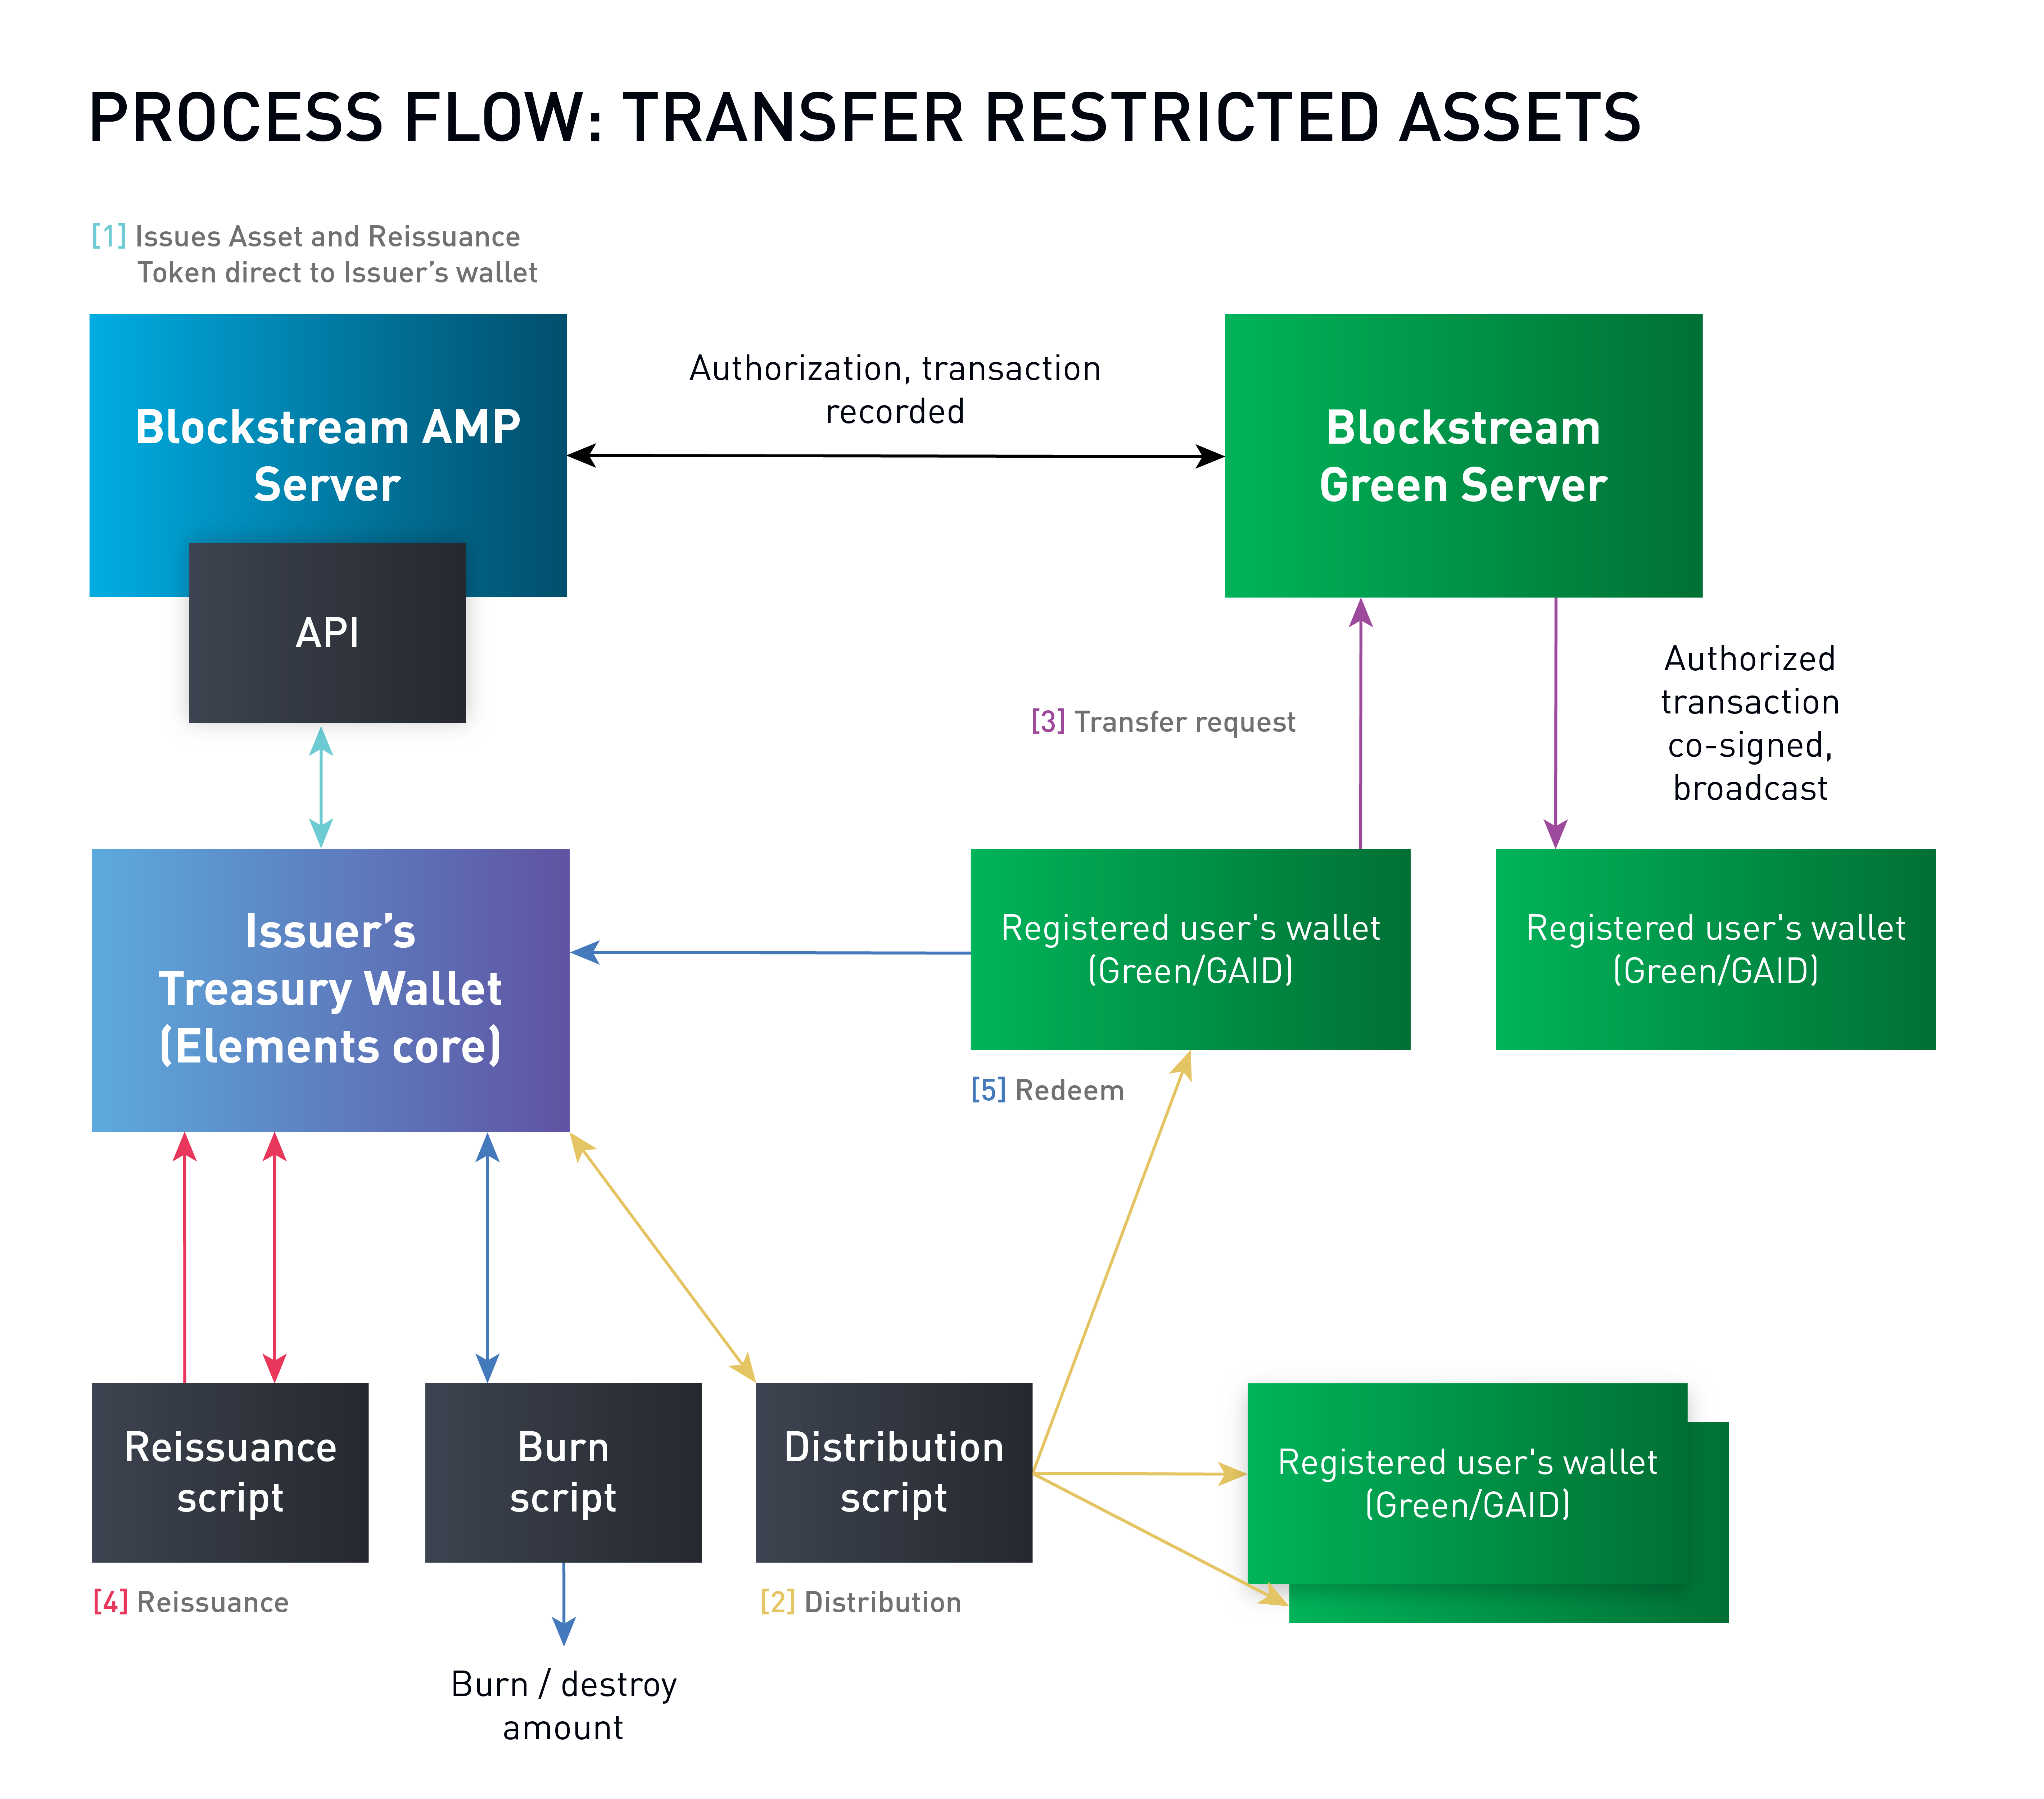 Blockstream AMP - Transfer Restricted Assets